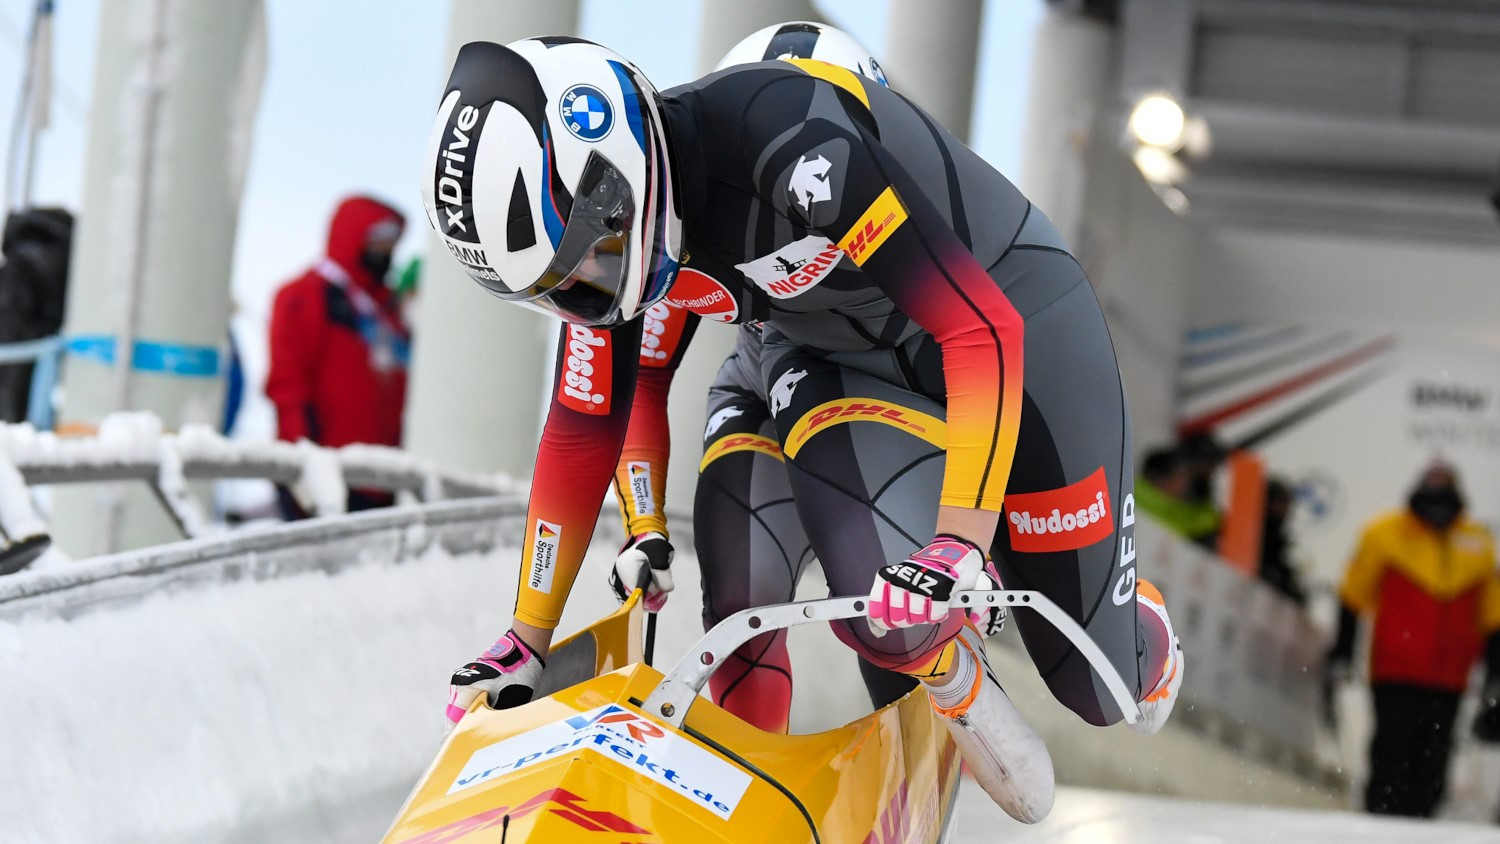 Nolte and Levi win European two-woman bobsleigh title